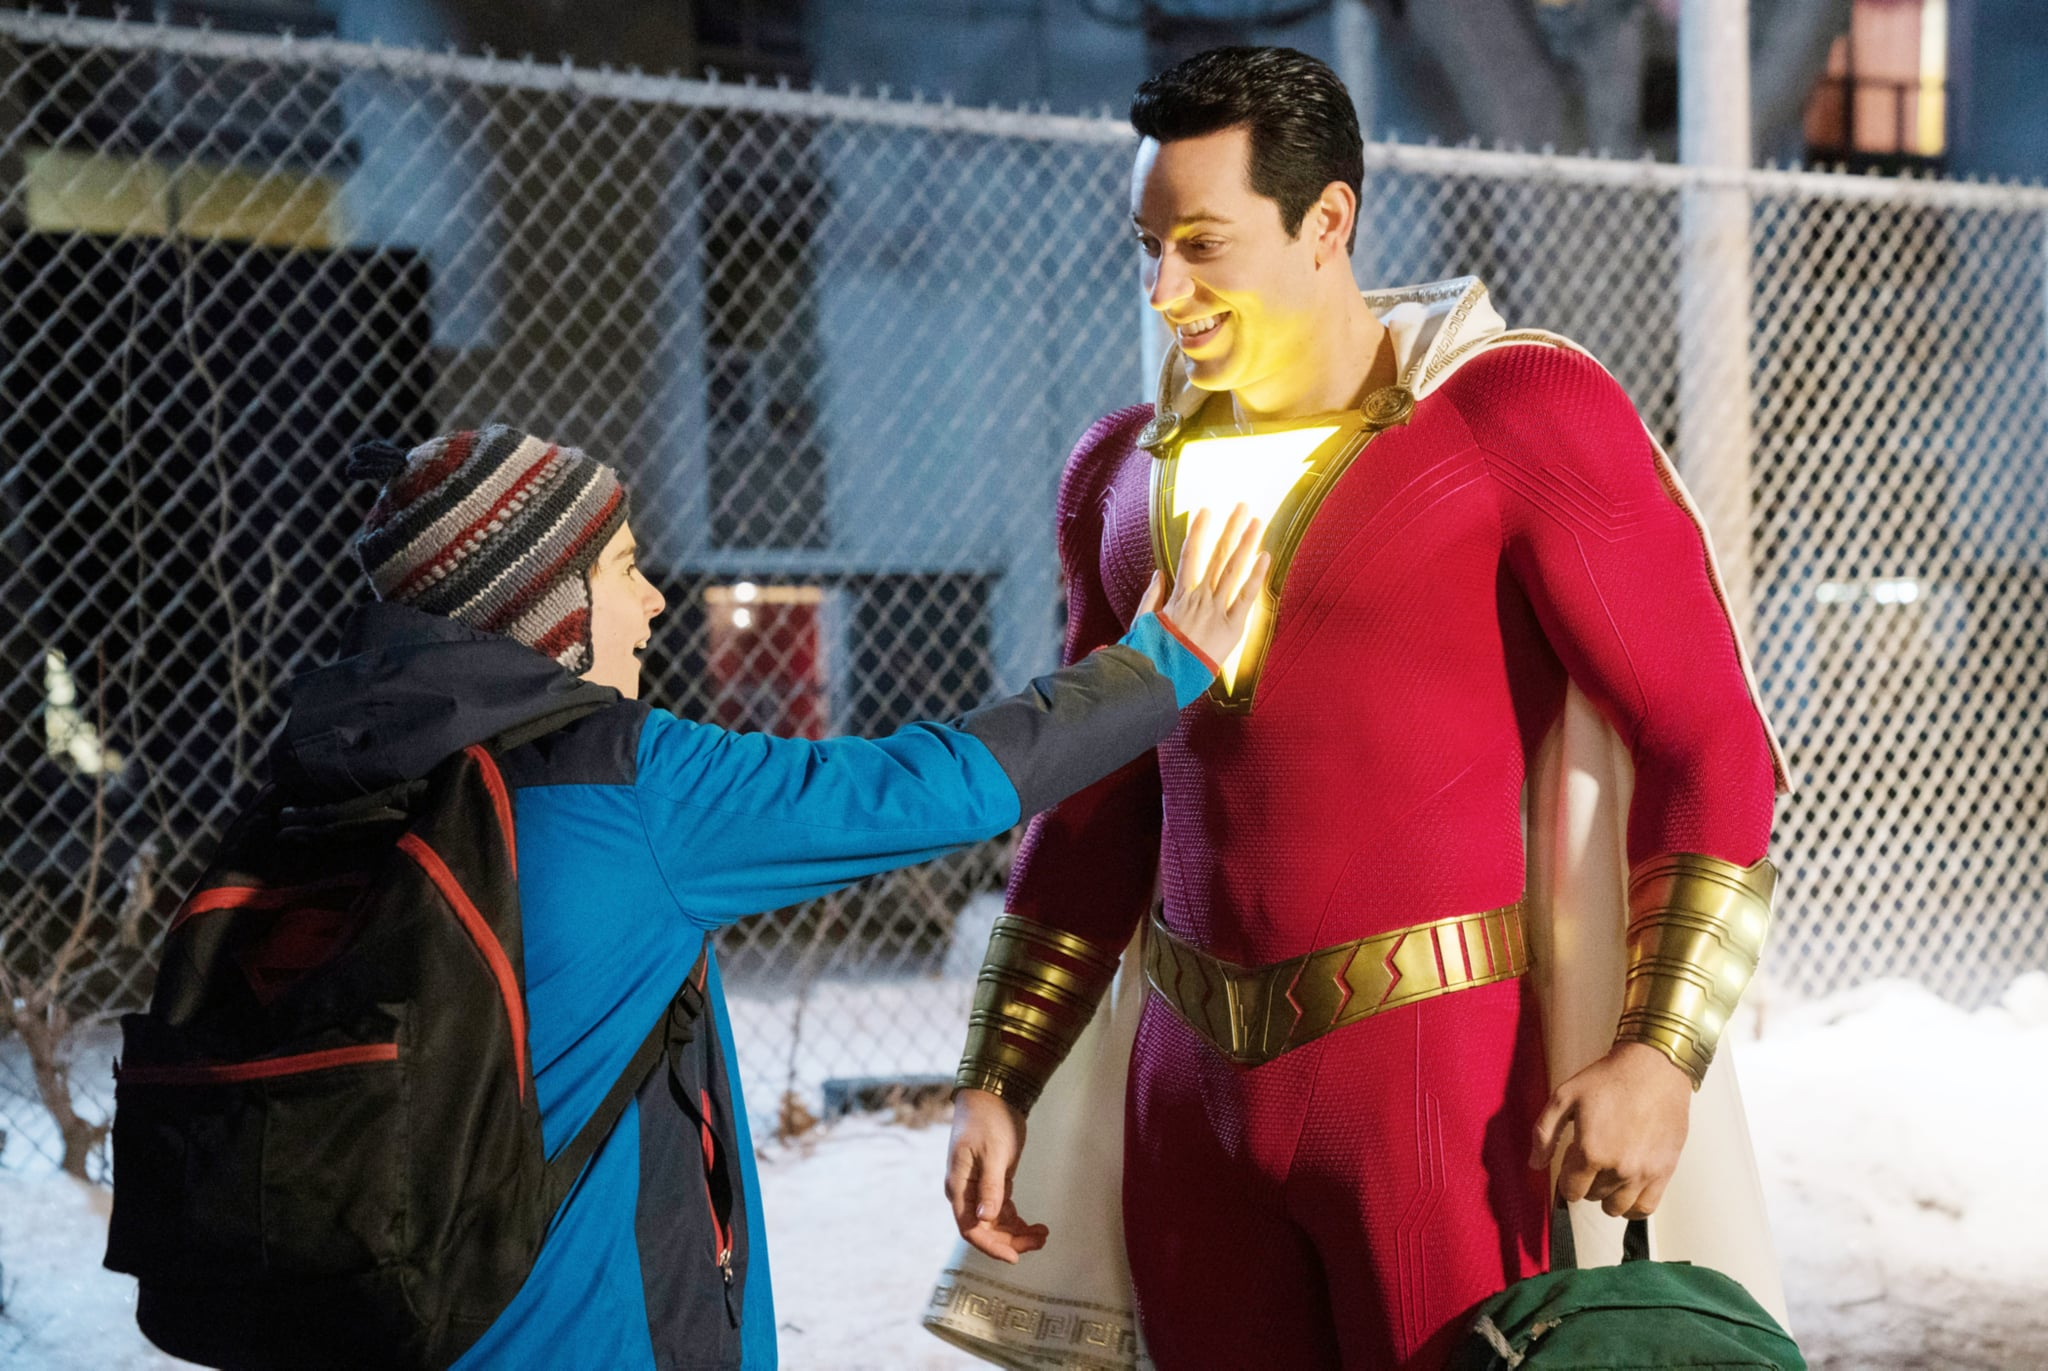 SHAZAM!, from left: Jack Dylan Grazer, Zachary Levi as Shazam, 2019. ph: Steve Wilkie /  Warner Bros. /Courtesy Everett Collection